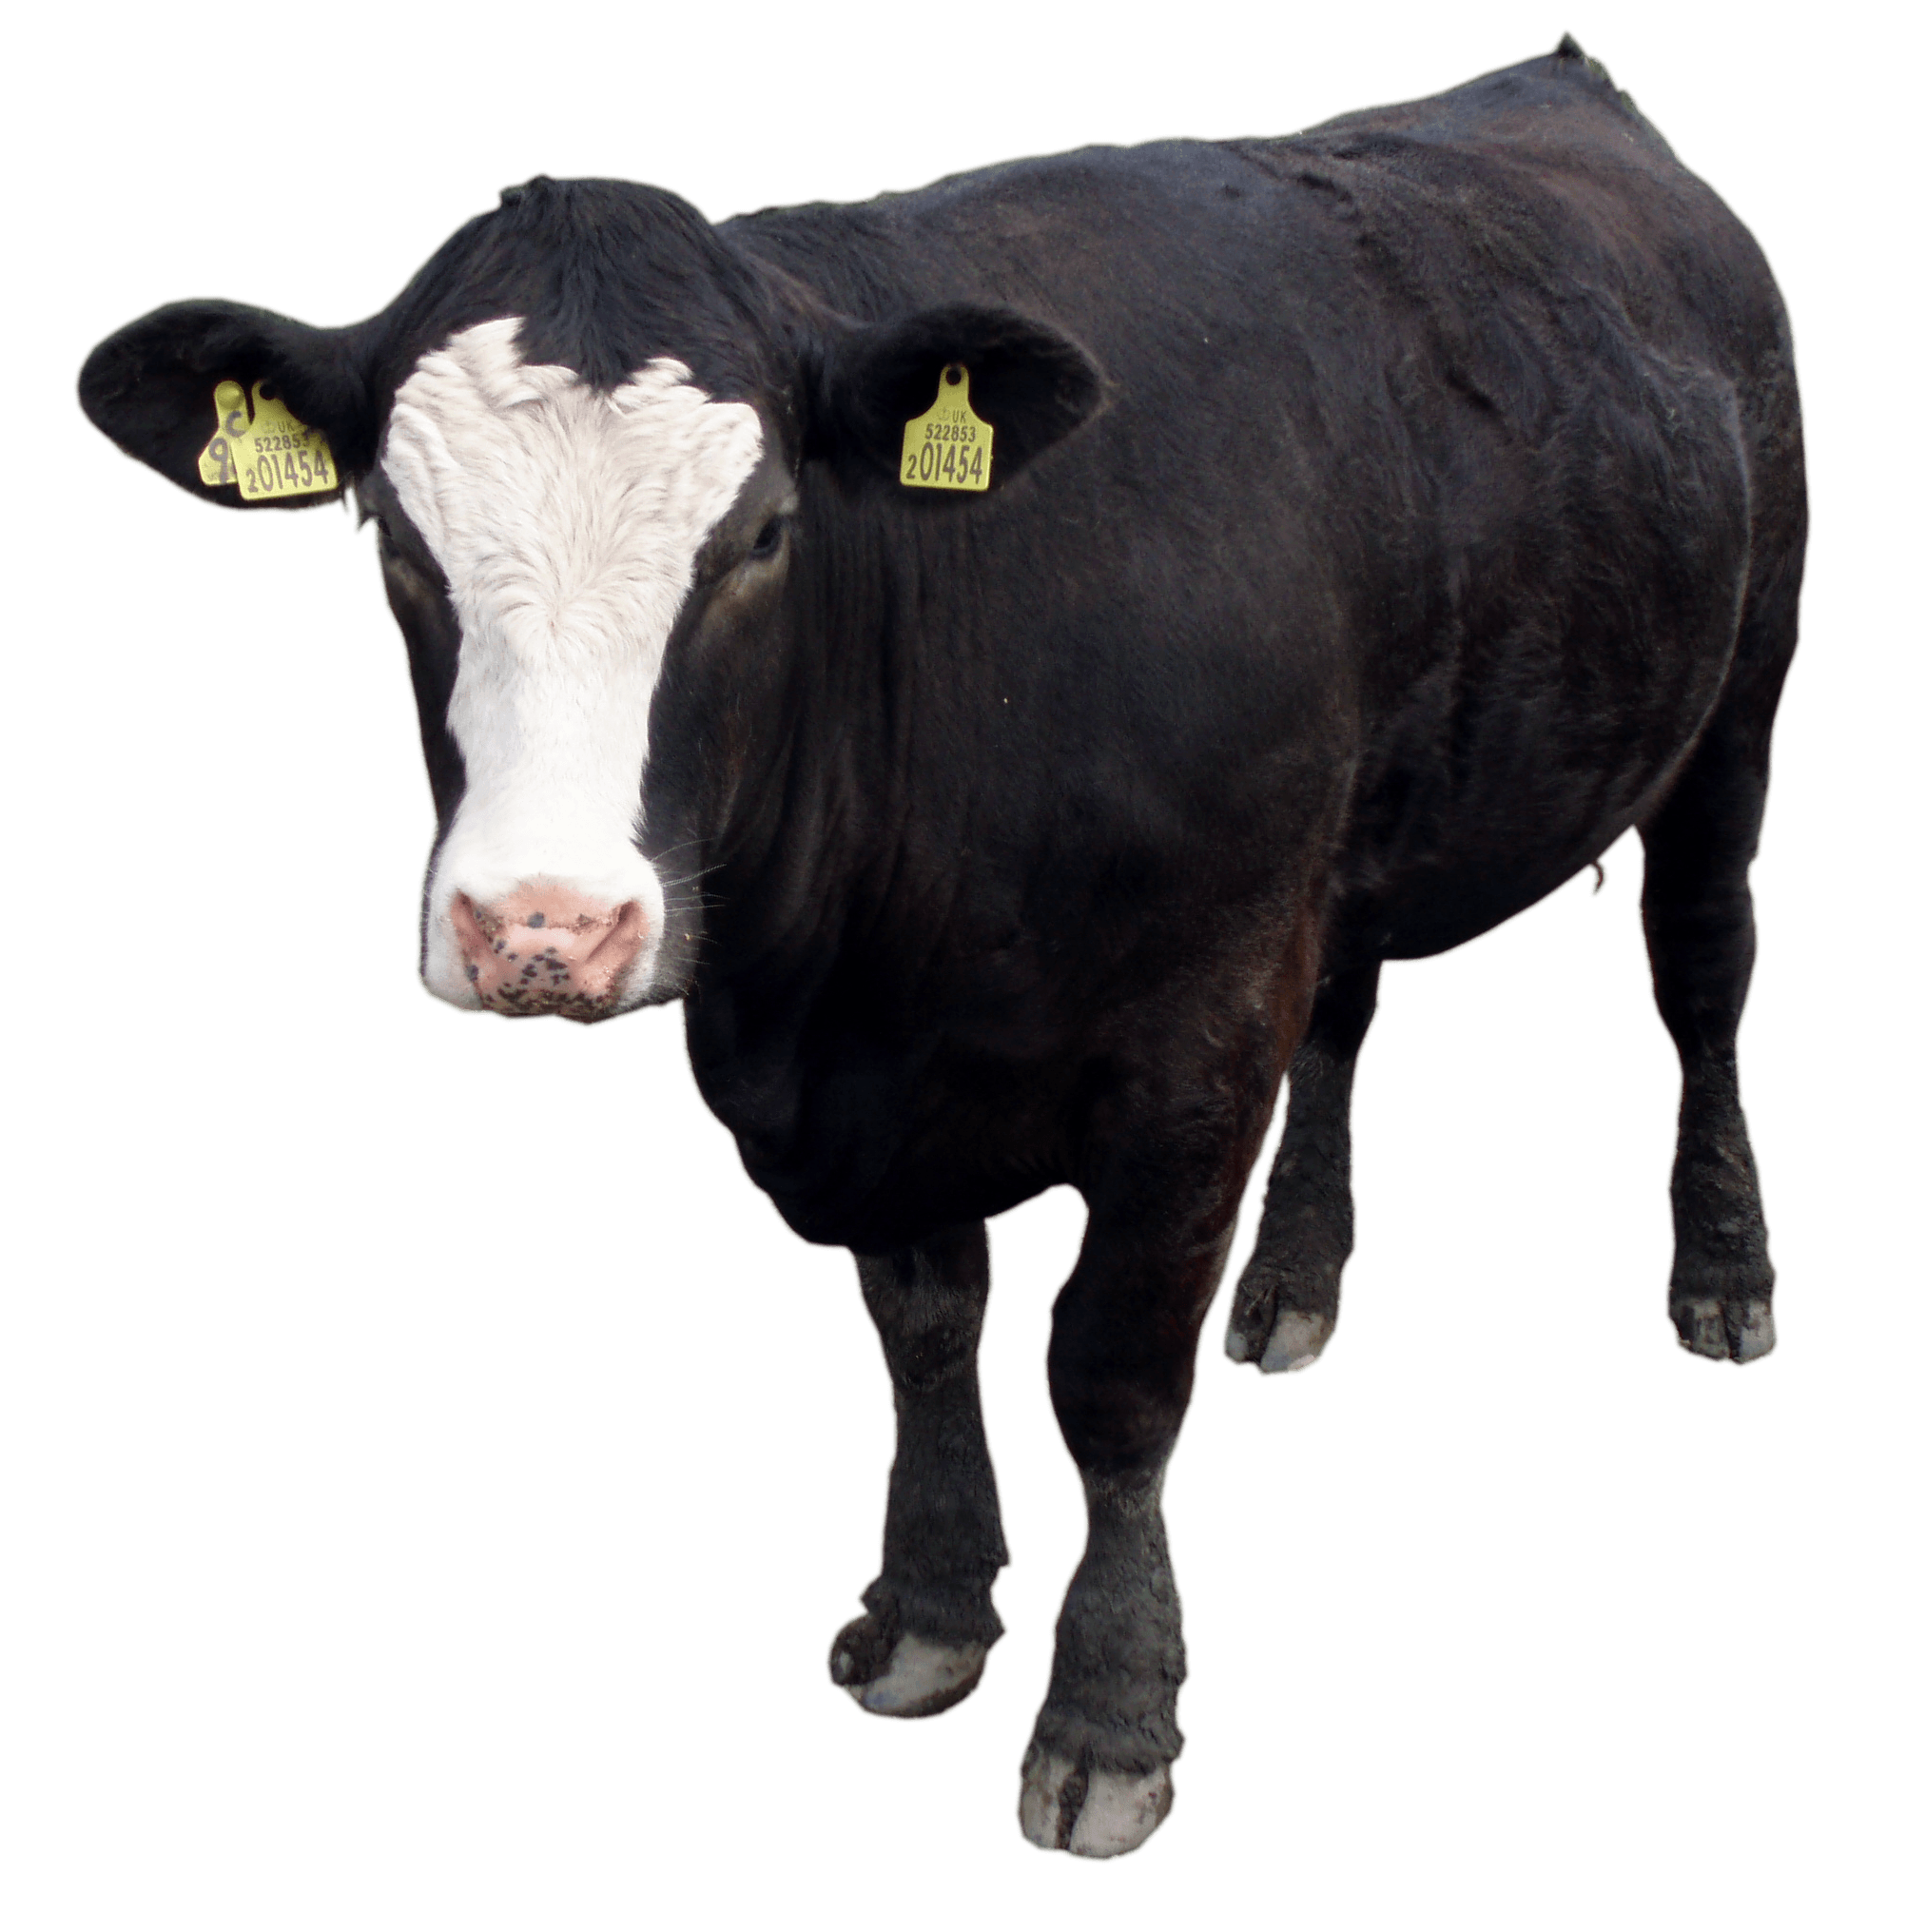 Black Cow Png Image Download Picture PNG Image - Baby Cow PNG HD